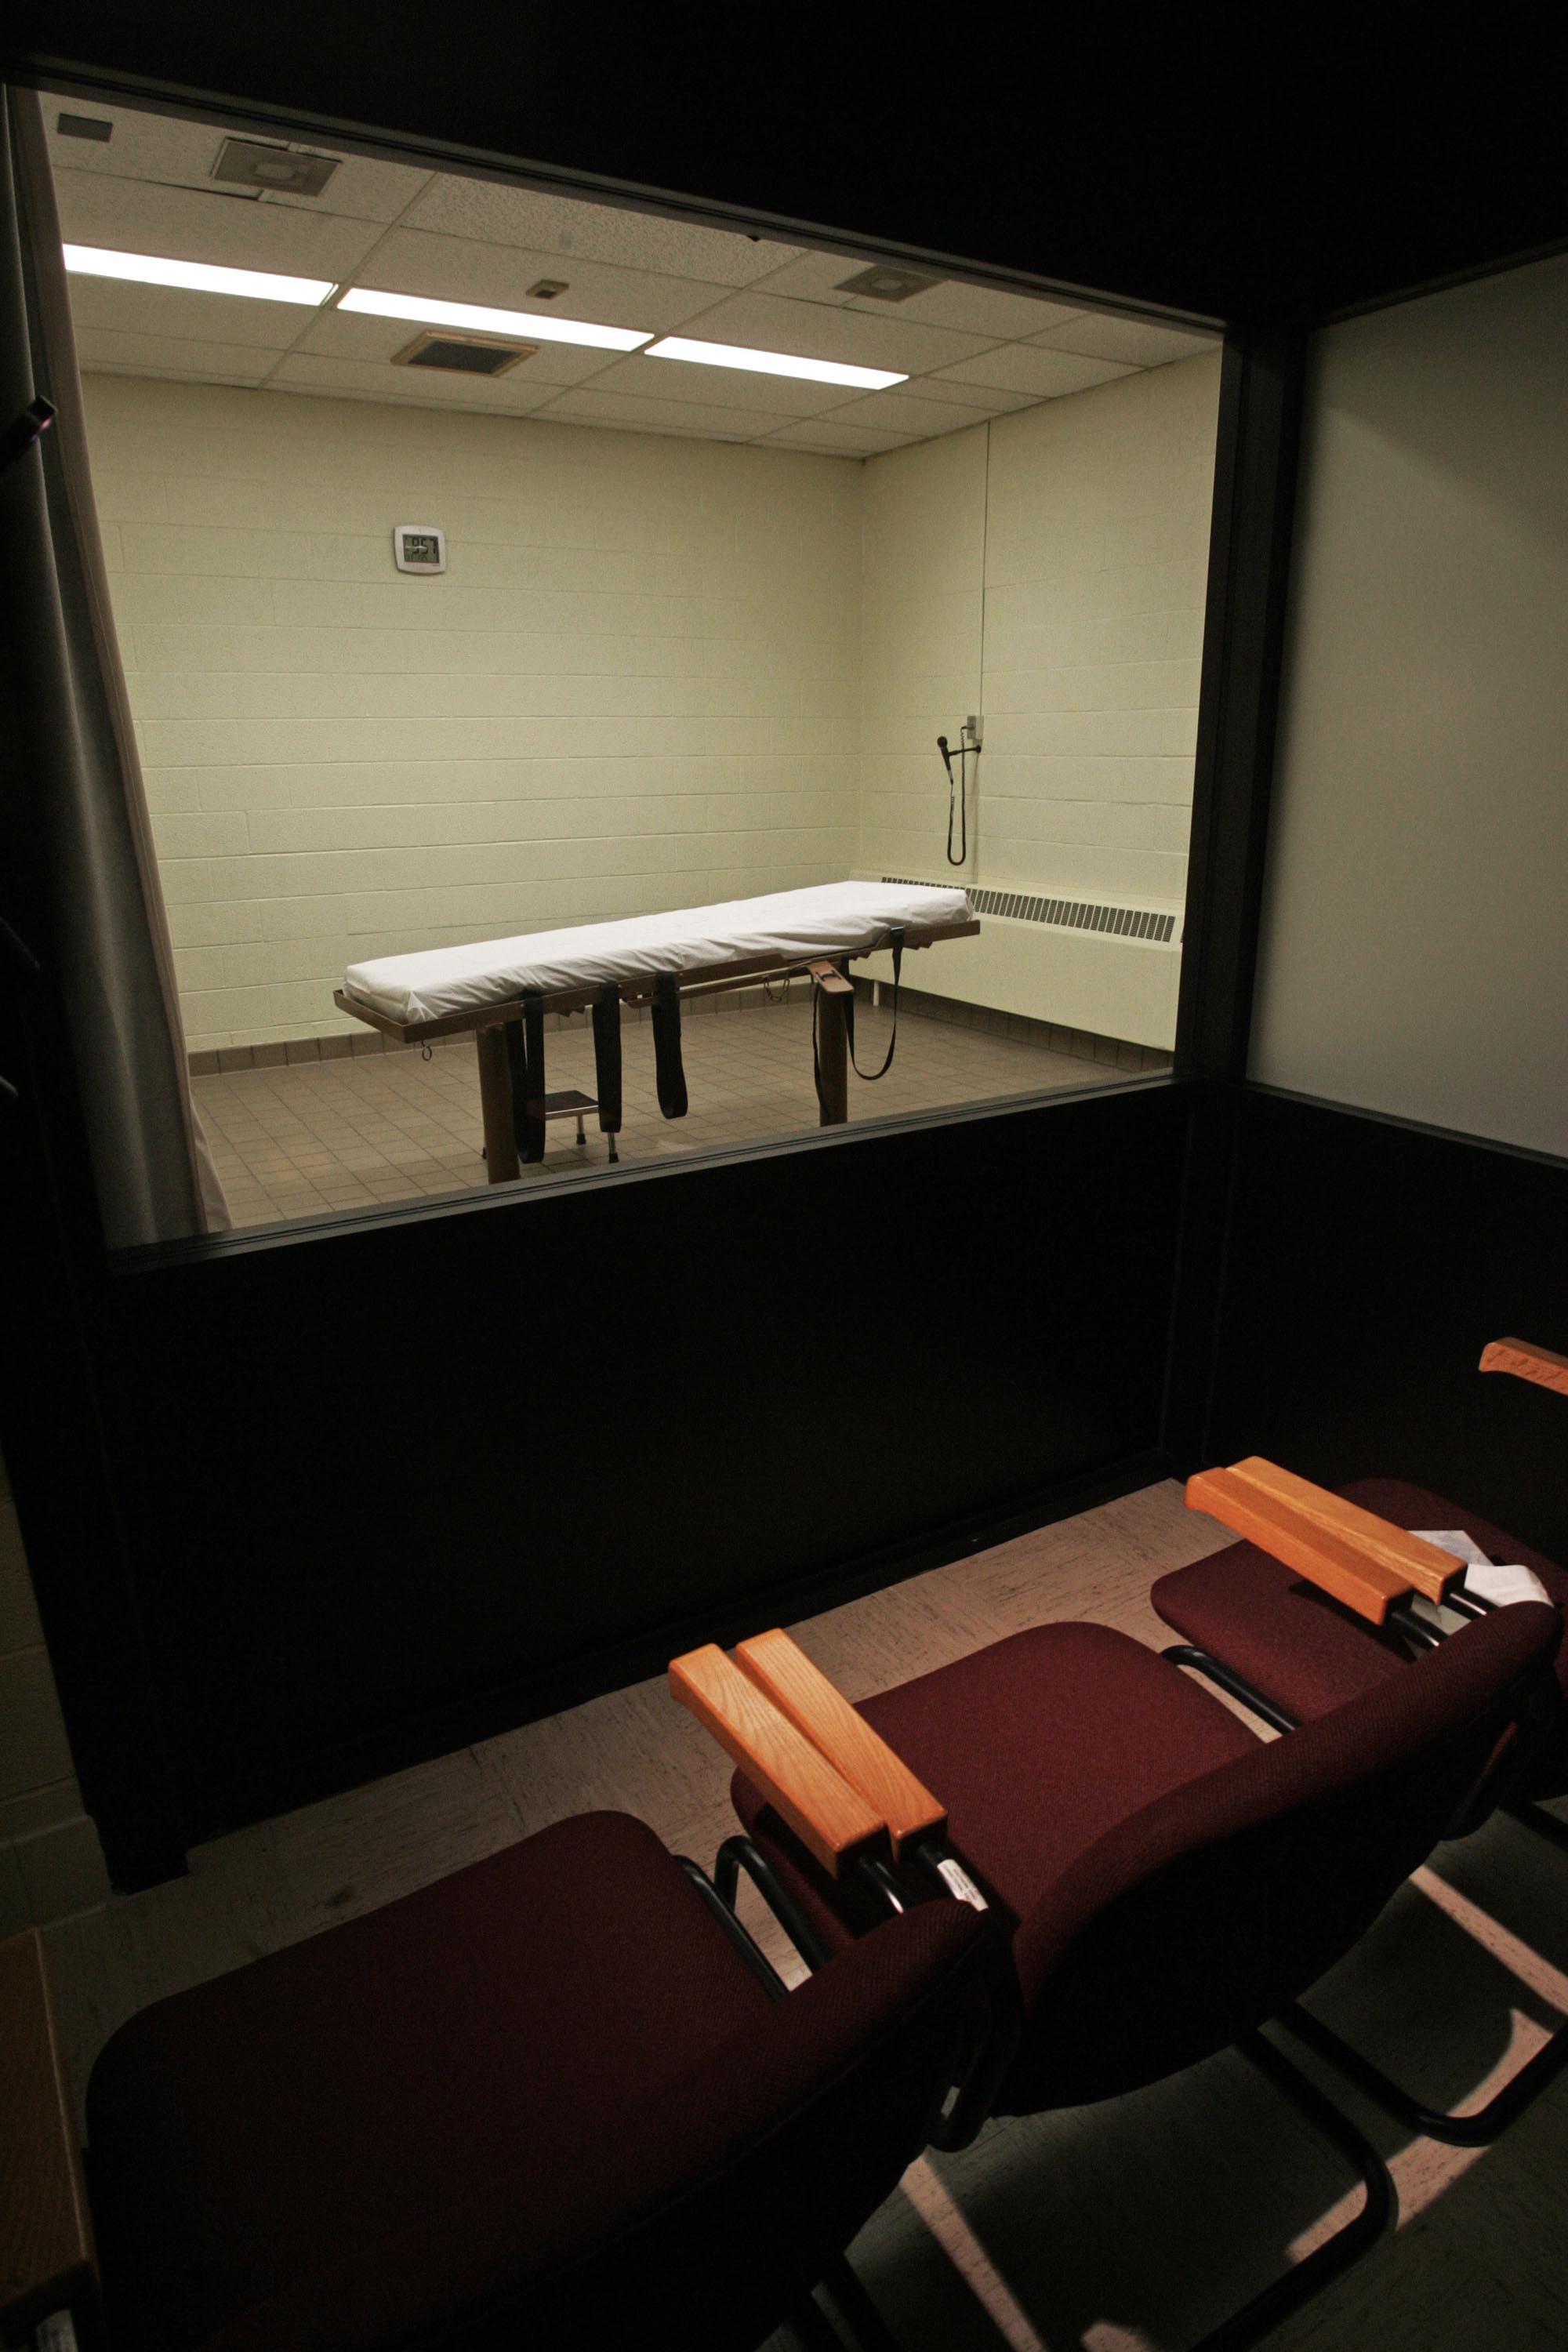 Final moments The viewing room at the Southern Ohio Correctional Facility looks onto the chamber where McGuire was executed